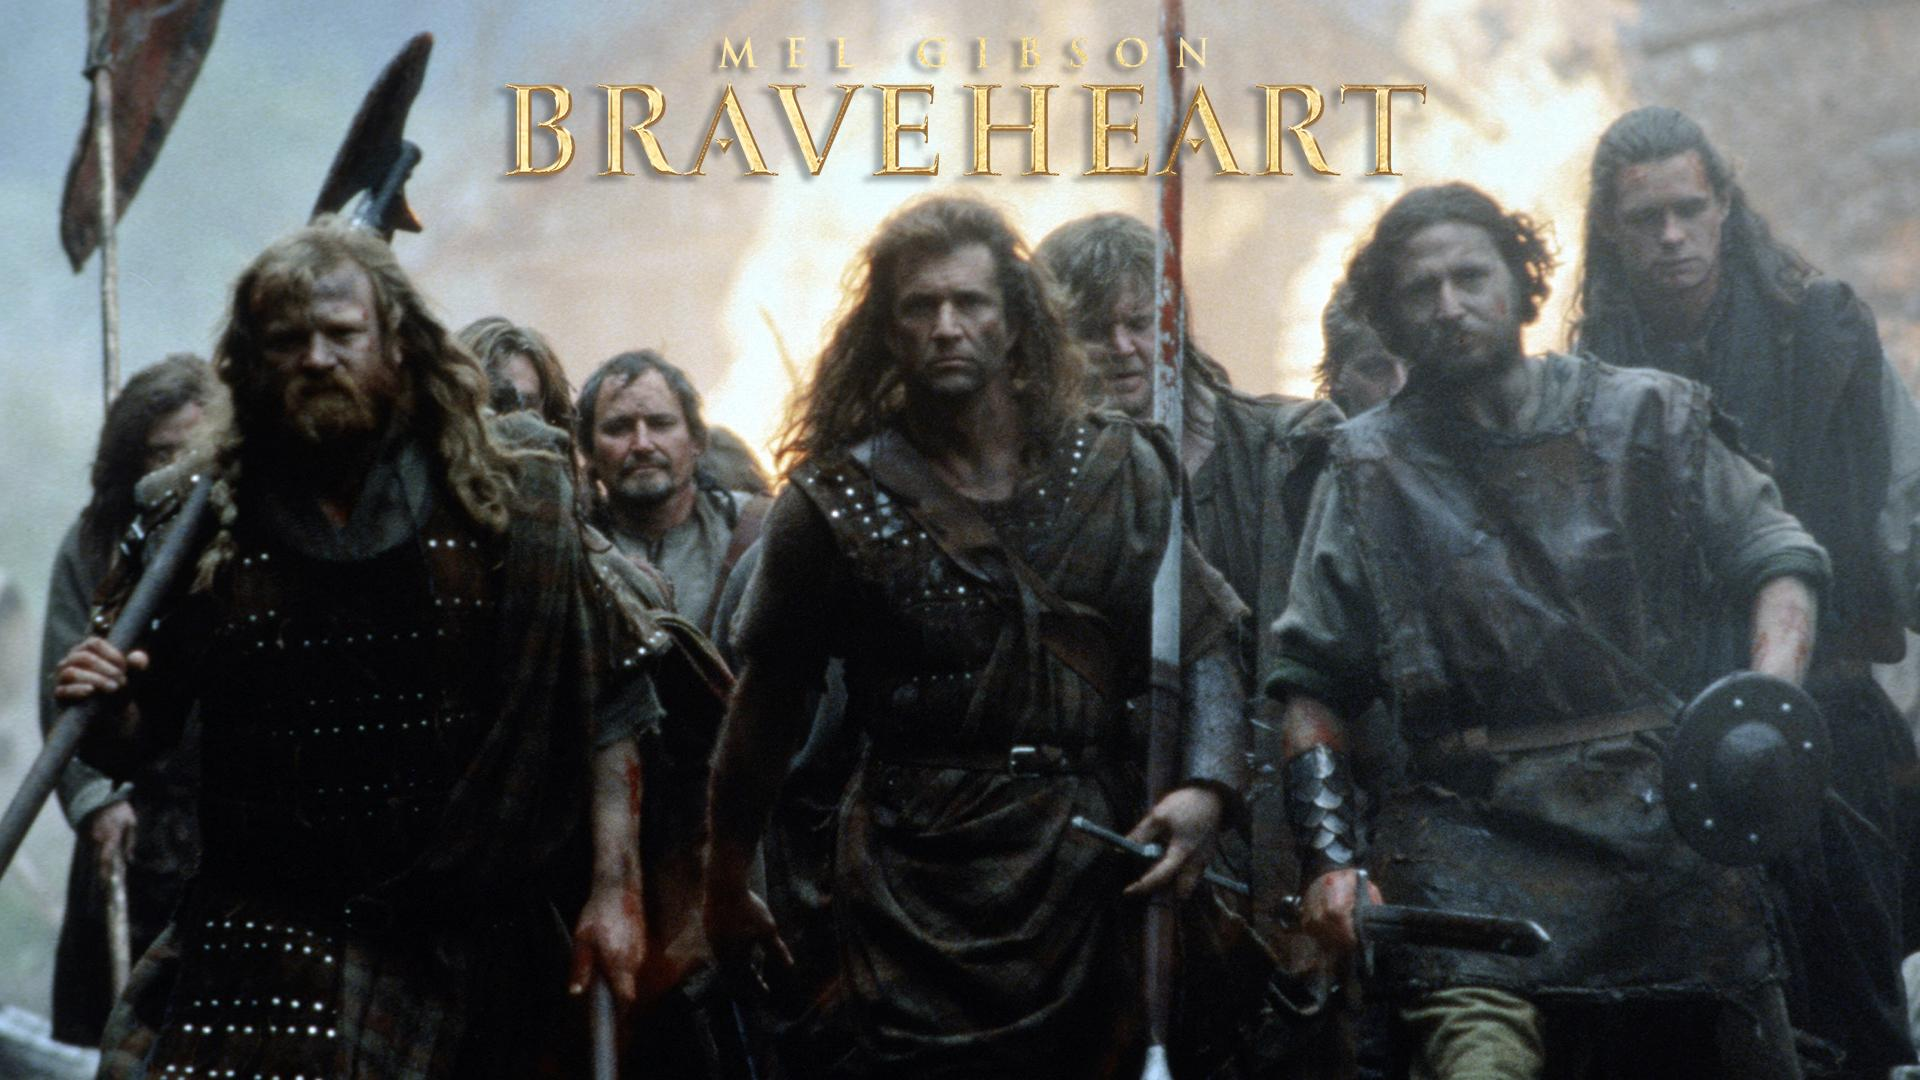 Watch Braveheart full movie online free